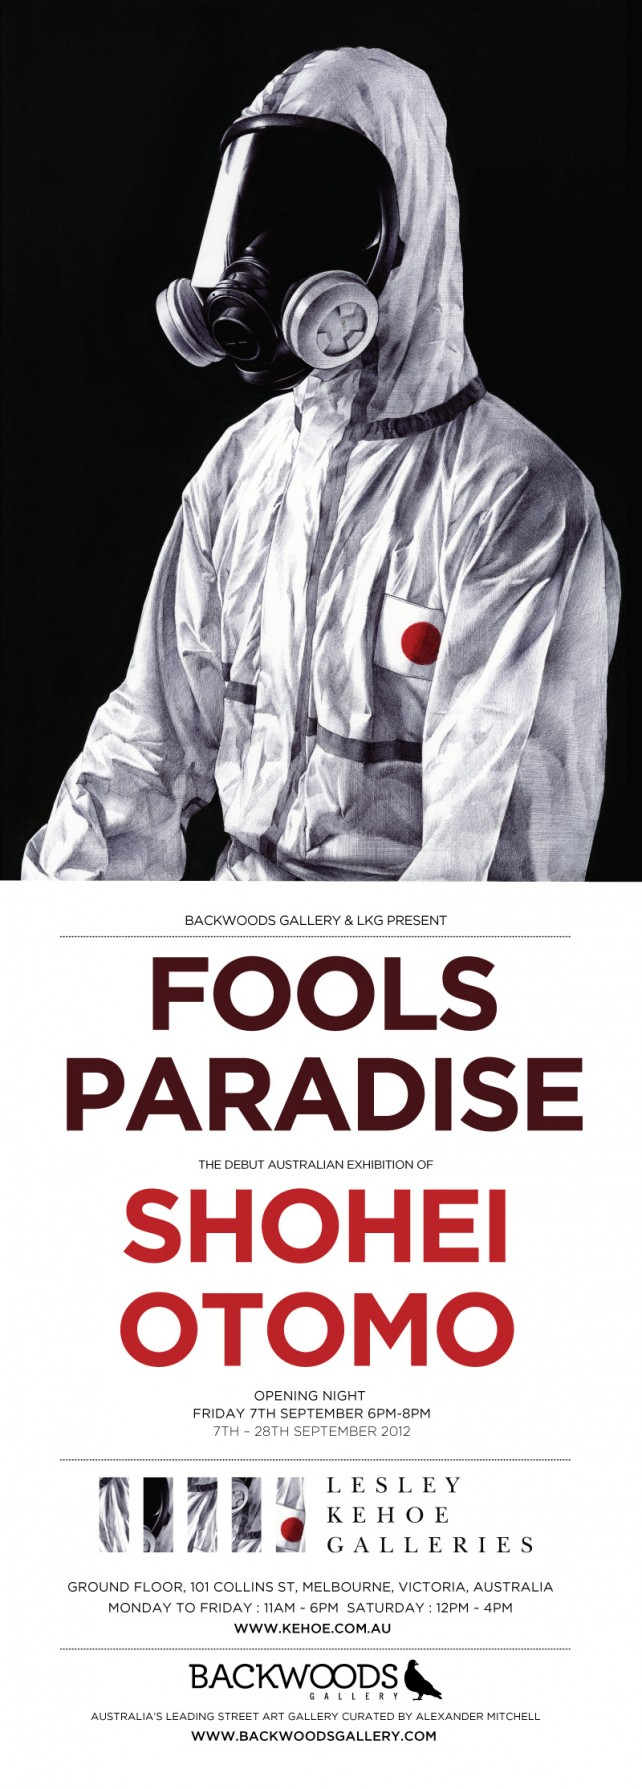 Shohei Otomo: Fools Paradise at Backwoods Gallery